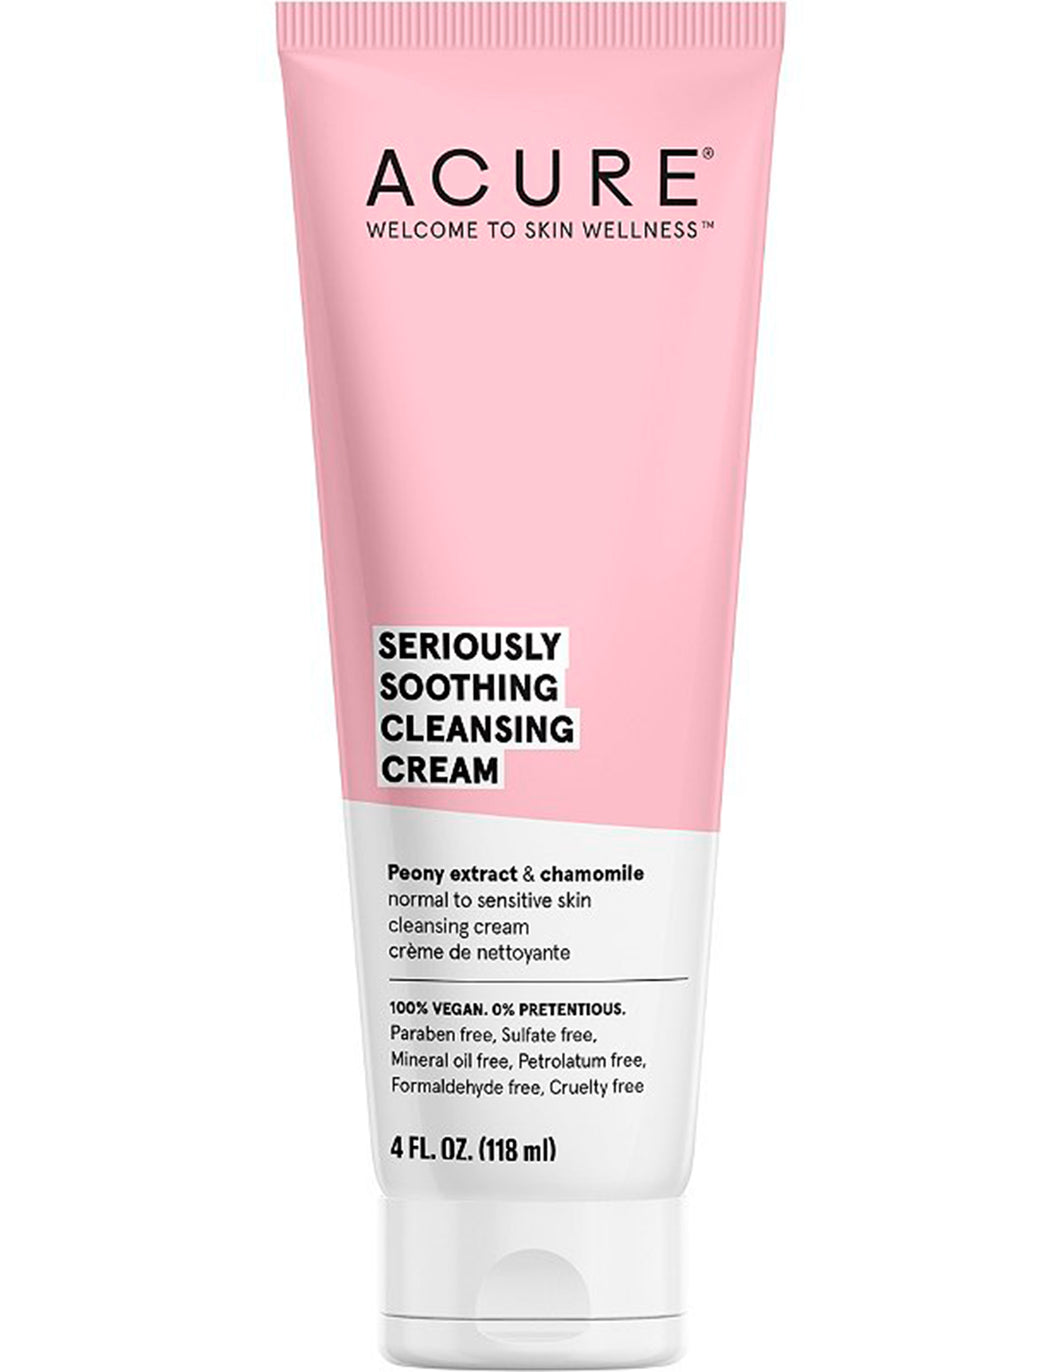 Seriously Soothing Cleansing Cream - Limpiador Facial para Piel Sensible